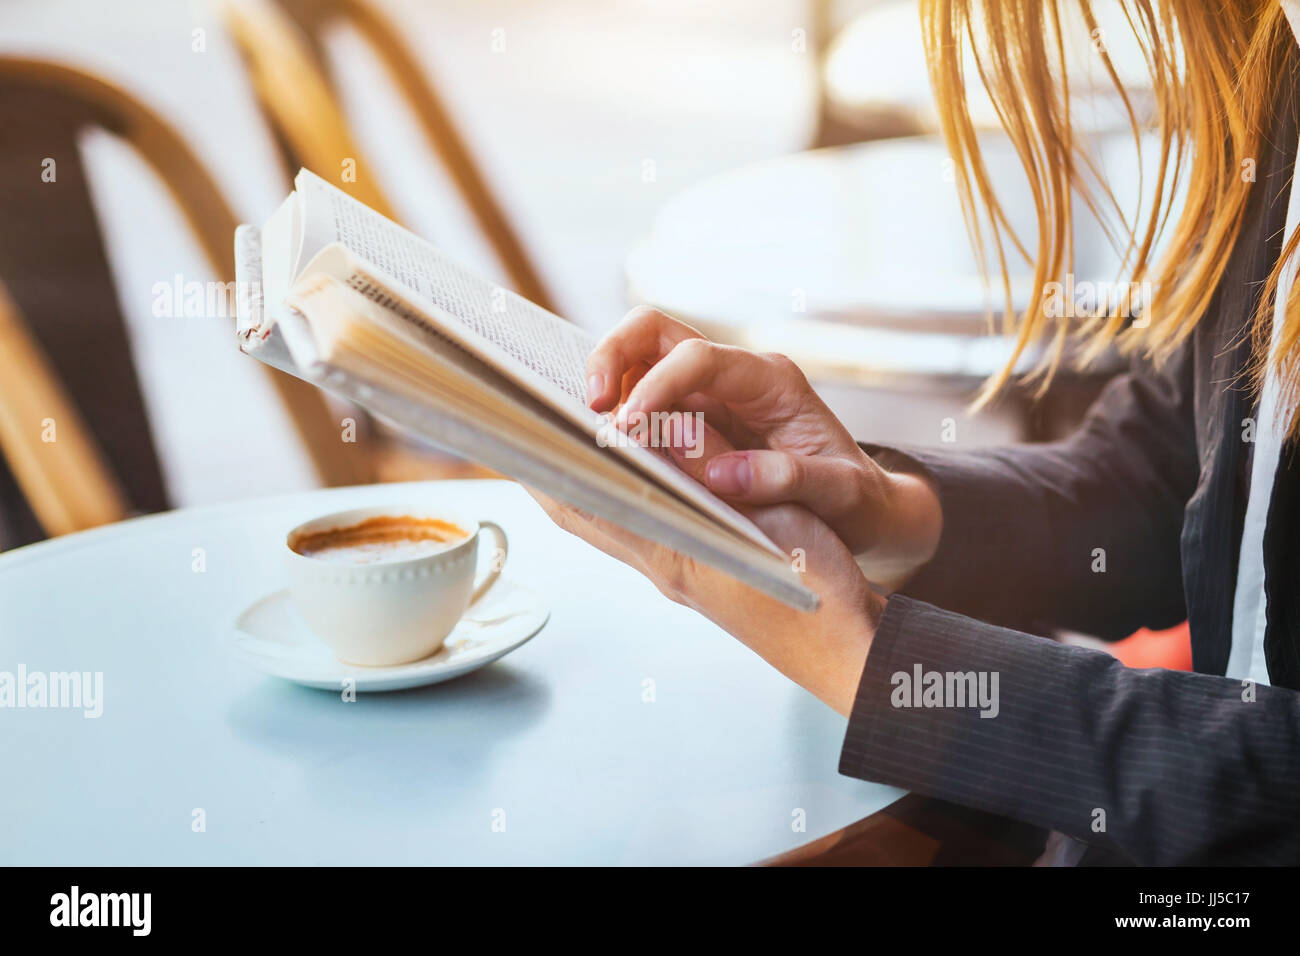 reading concept, close up of woman hands holding a book - Stock Image